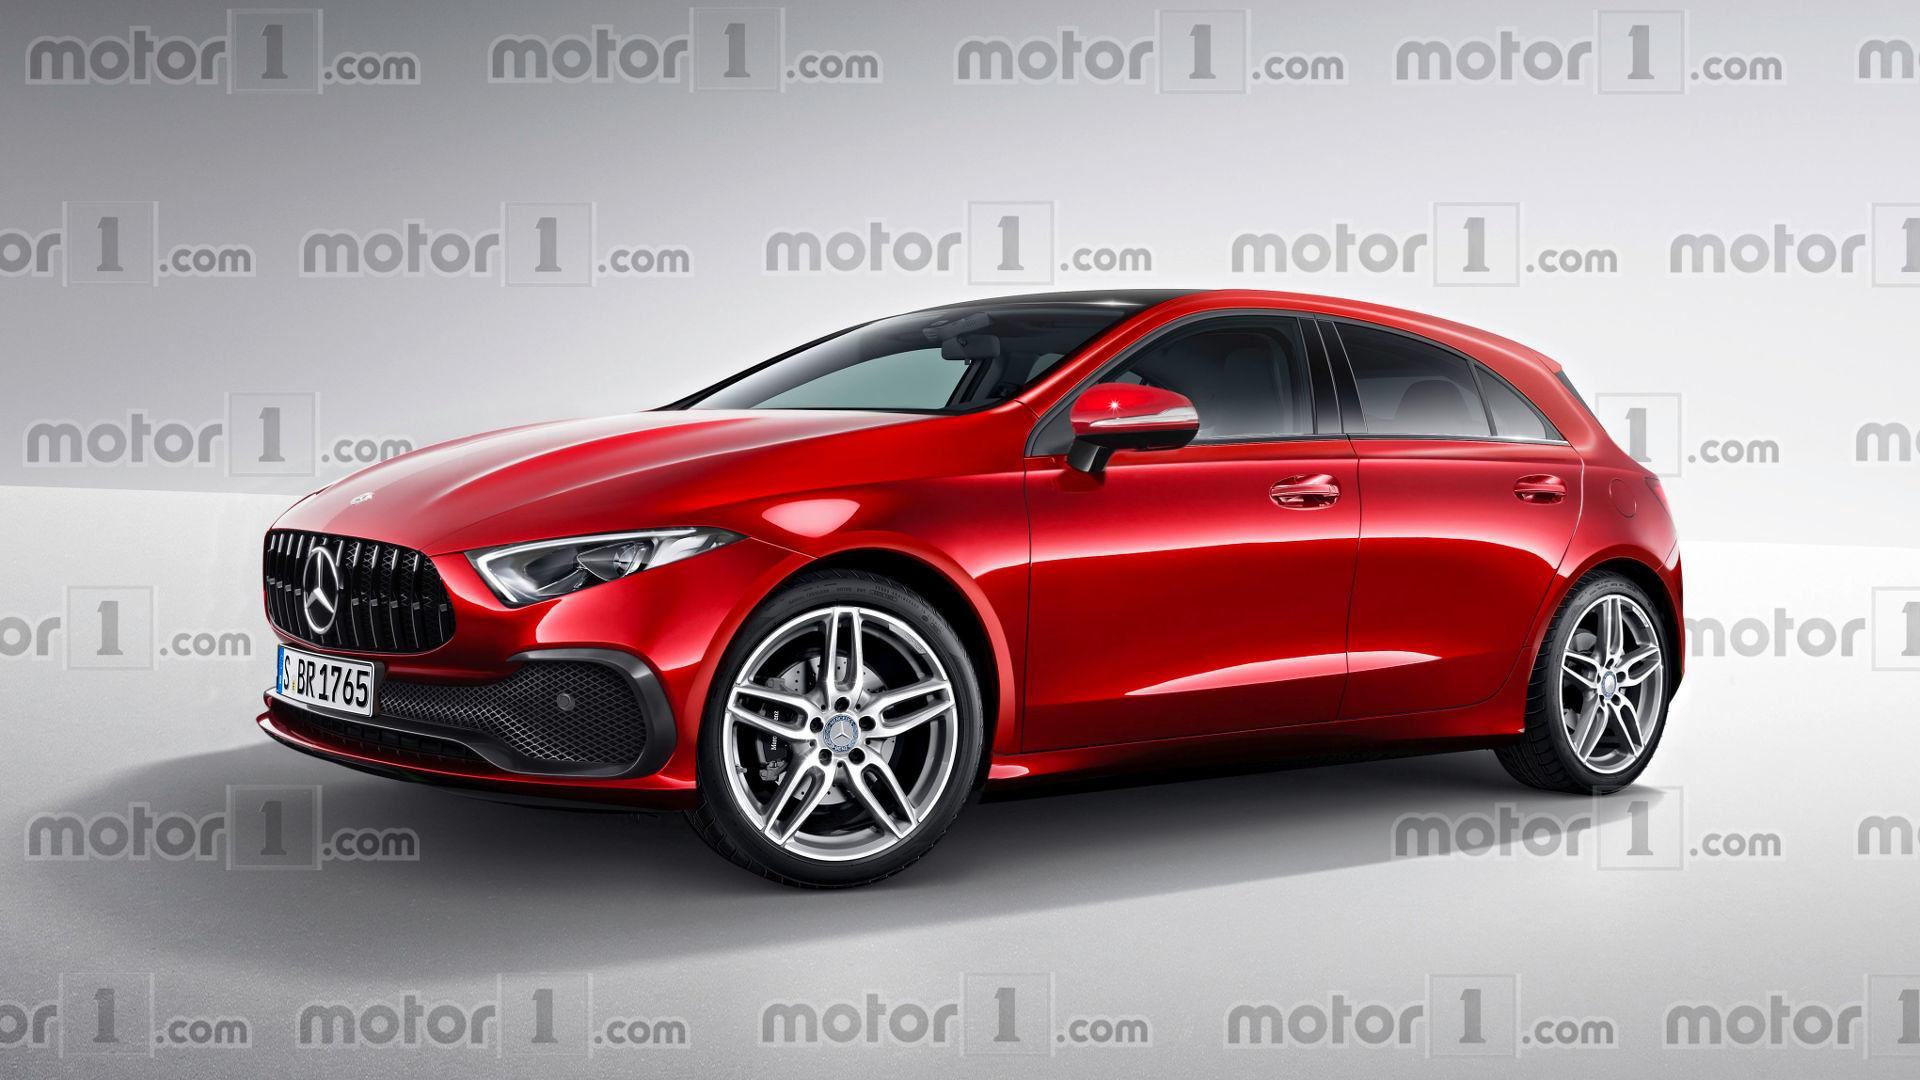 new mercedes a class render transforms sedan concept into hatch. Black Bedroom Furniture Sets. Home Design Ideas